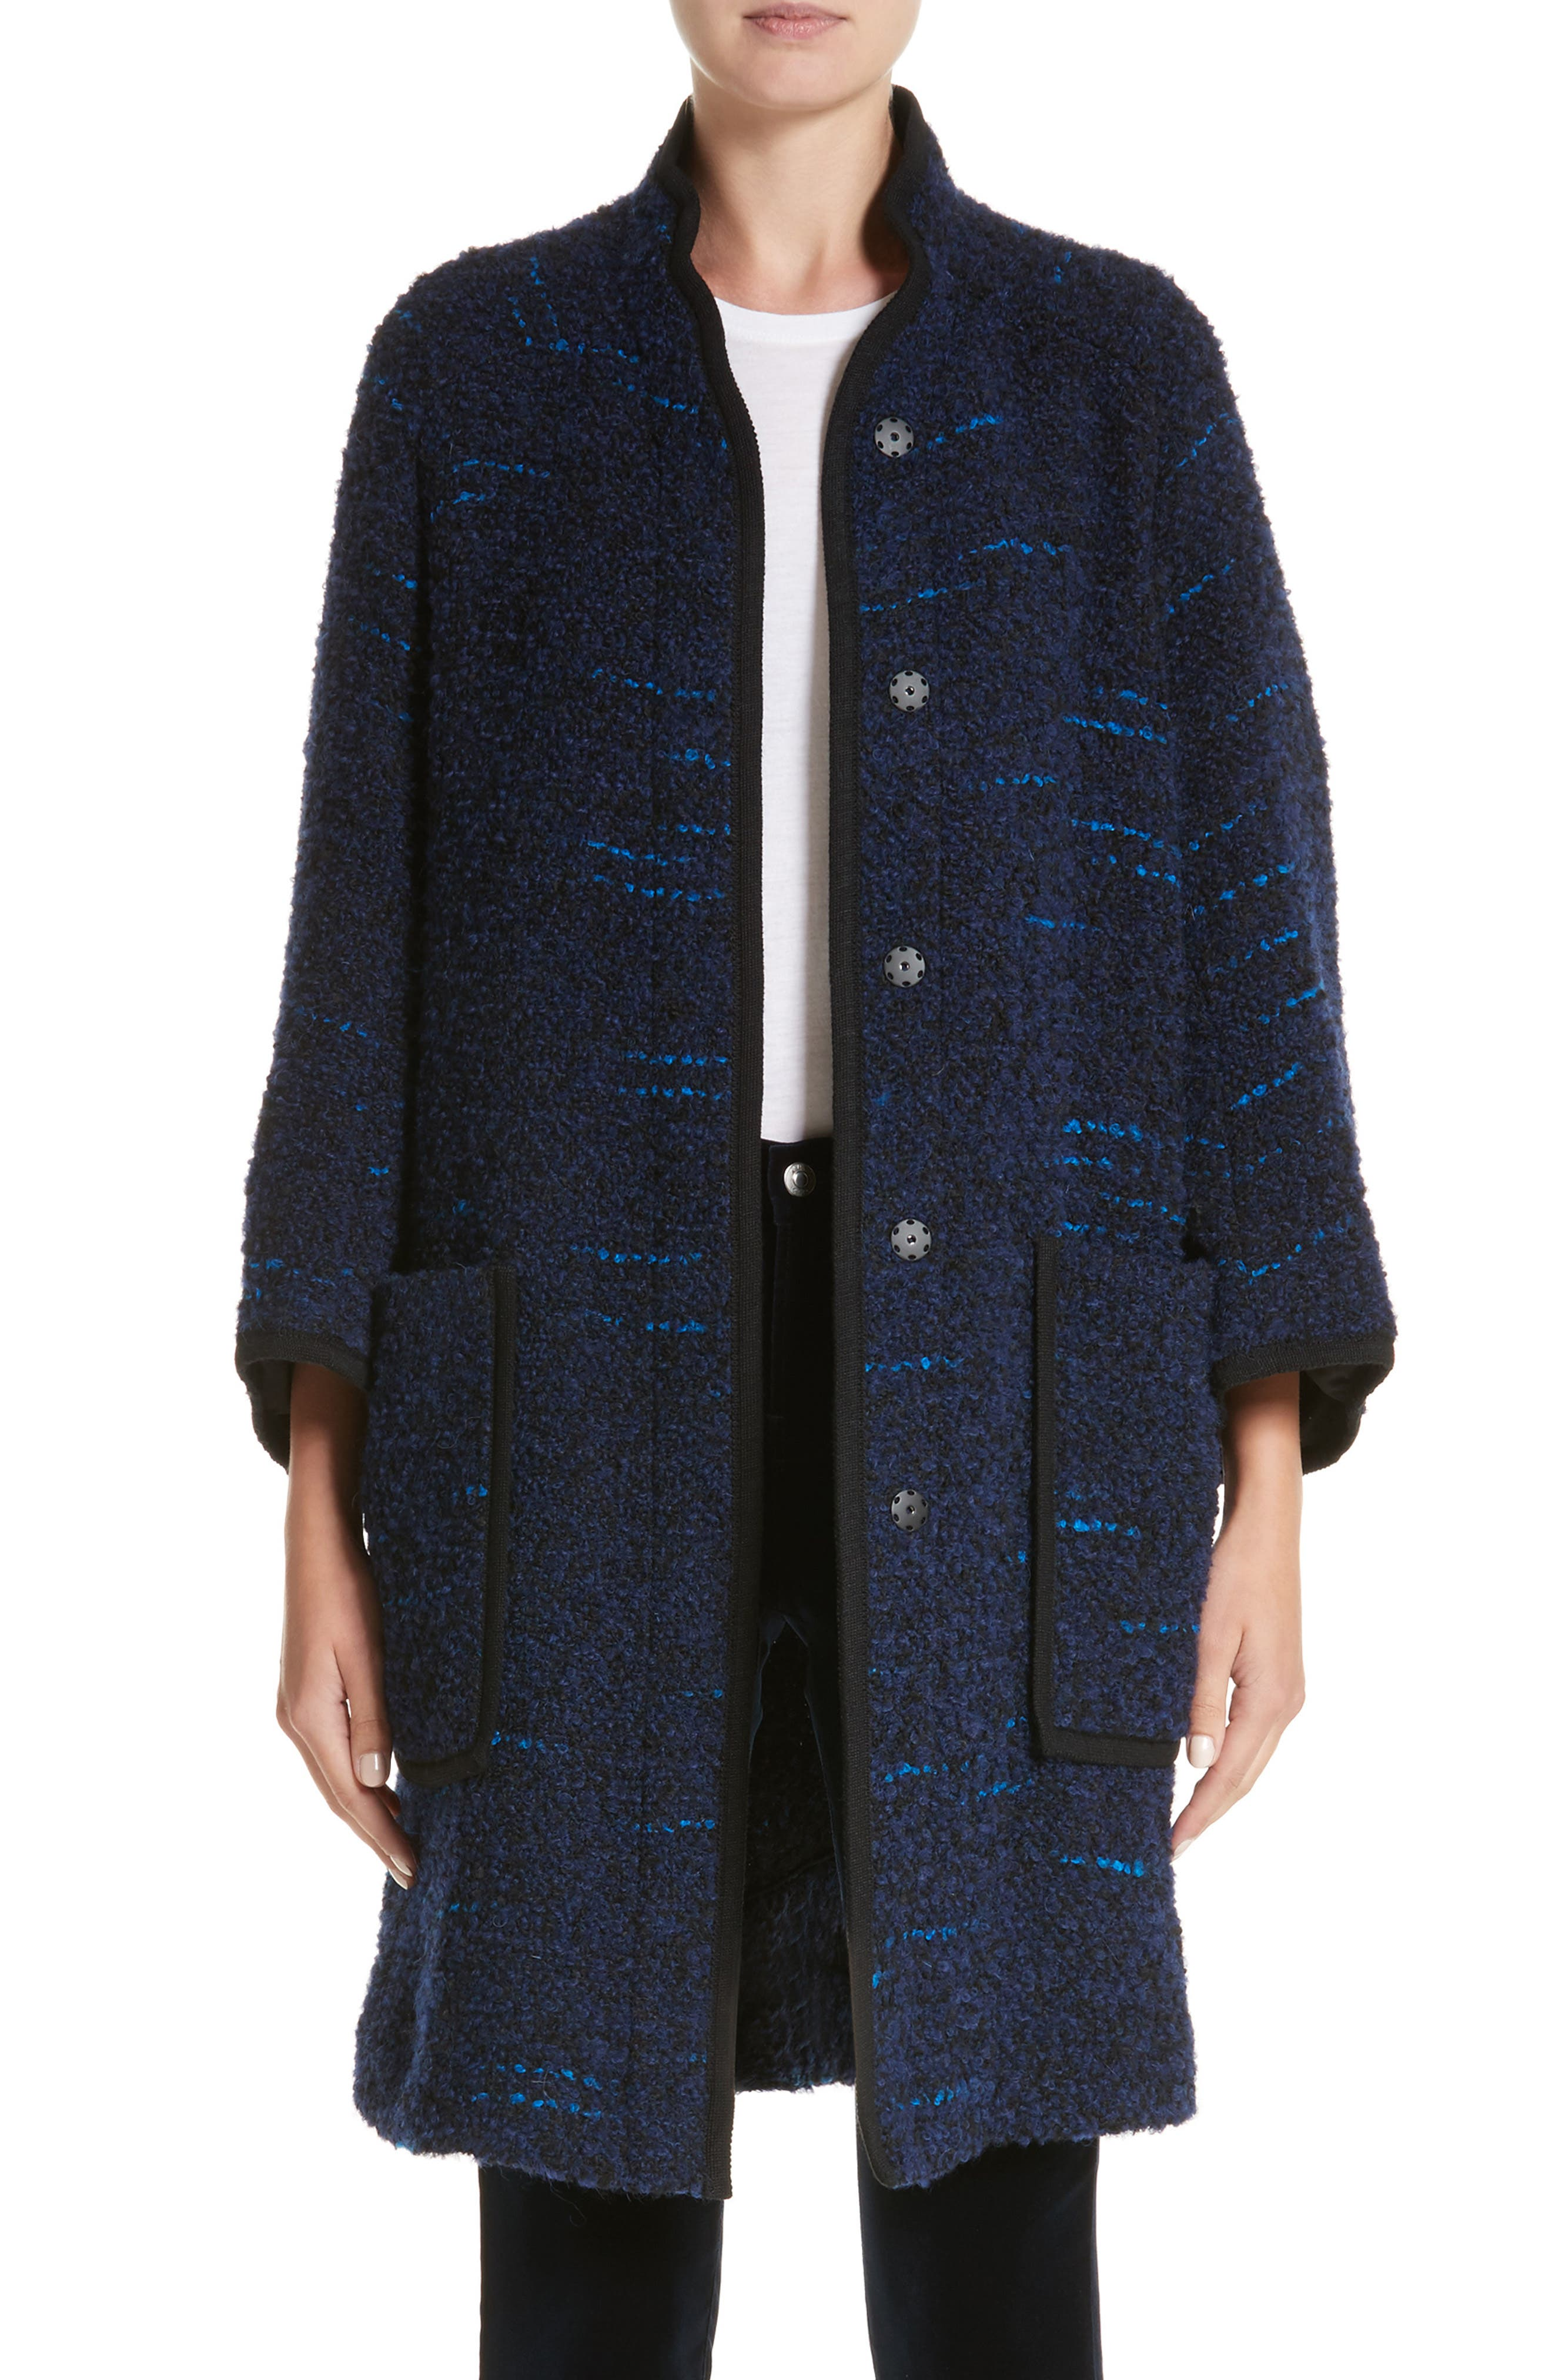 Armani Collezioni Wool Blend Swing Coat